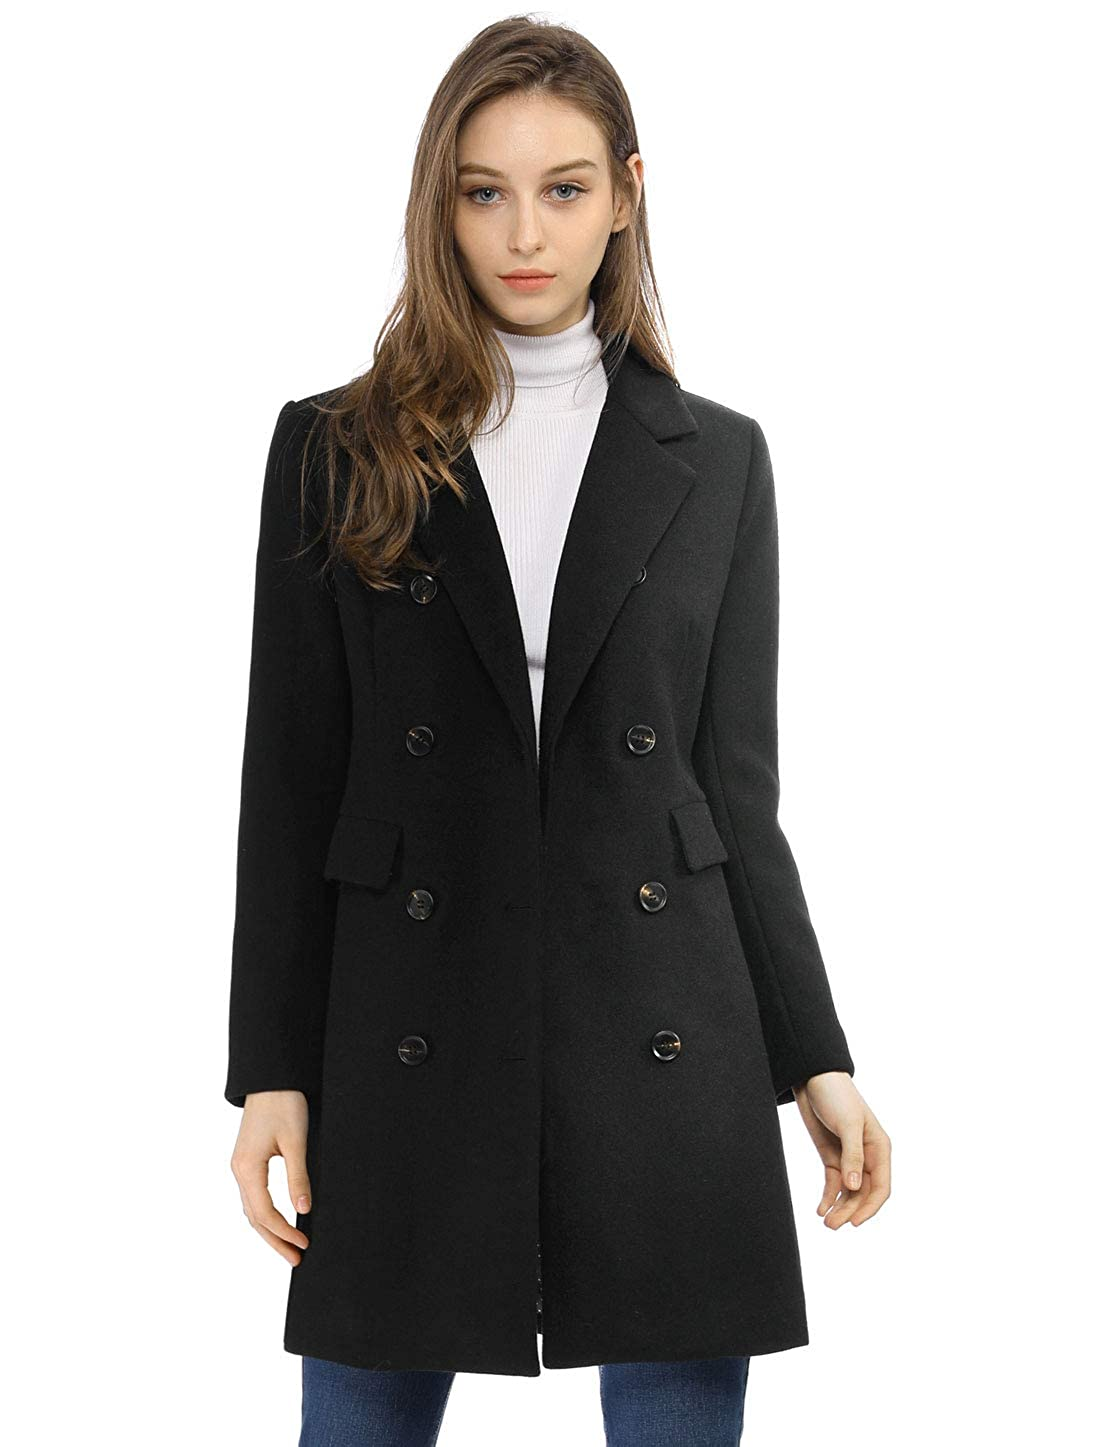 4414ba46651 Amazon.com  Allegra K Women s Long Jacket Notched Lapel Double Breasted  Trench Coat  Clothing